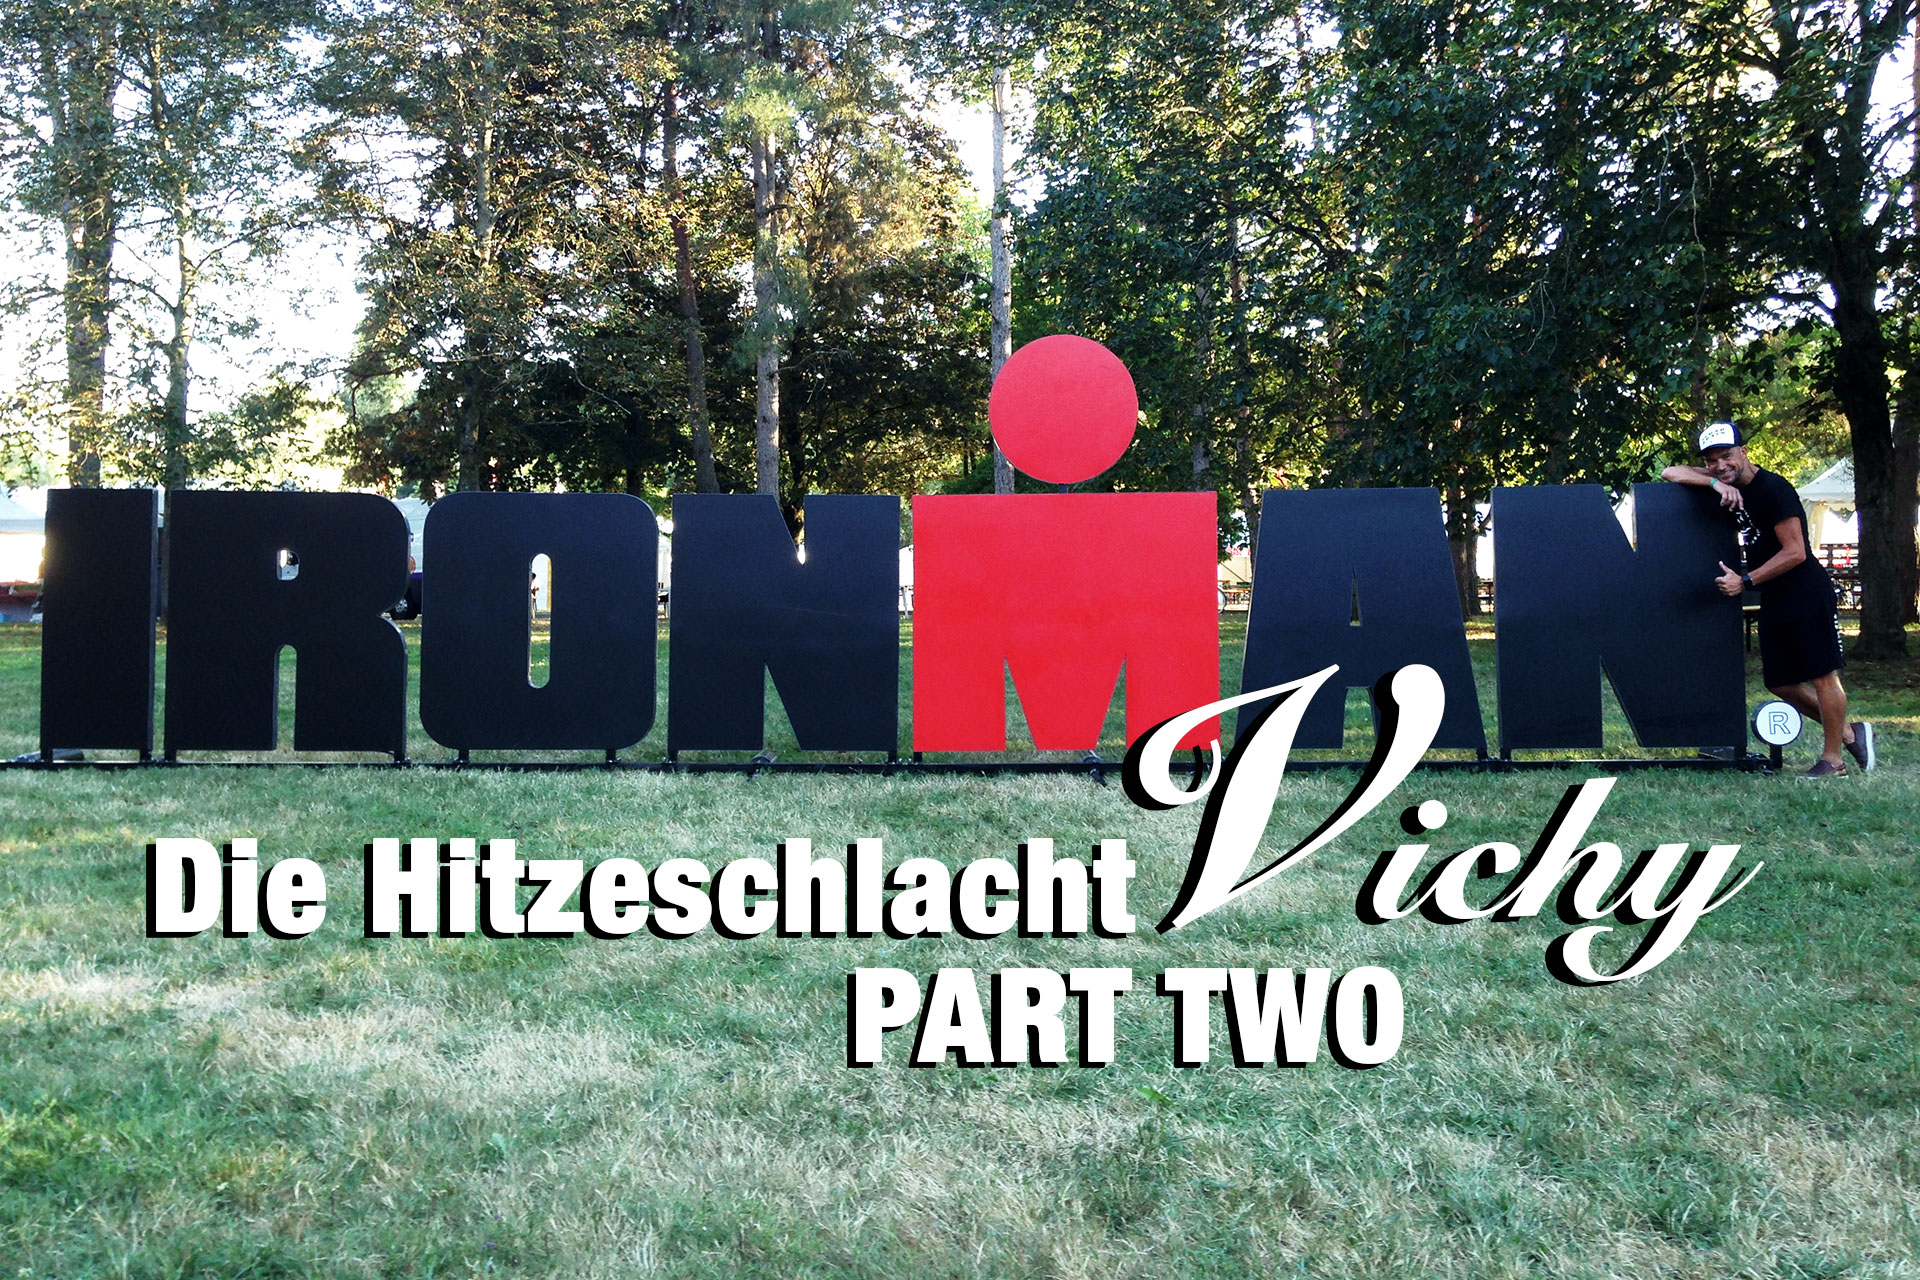 IRONMAN VICHY 2016 Die Hitzeschlacht – PART TWO Ironman Sign ©stefandrexl.de